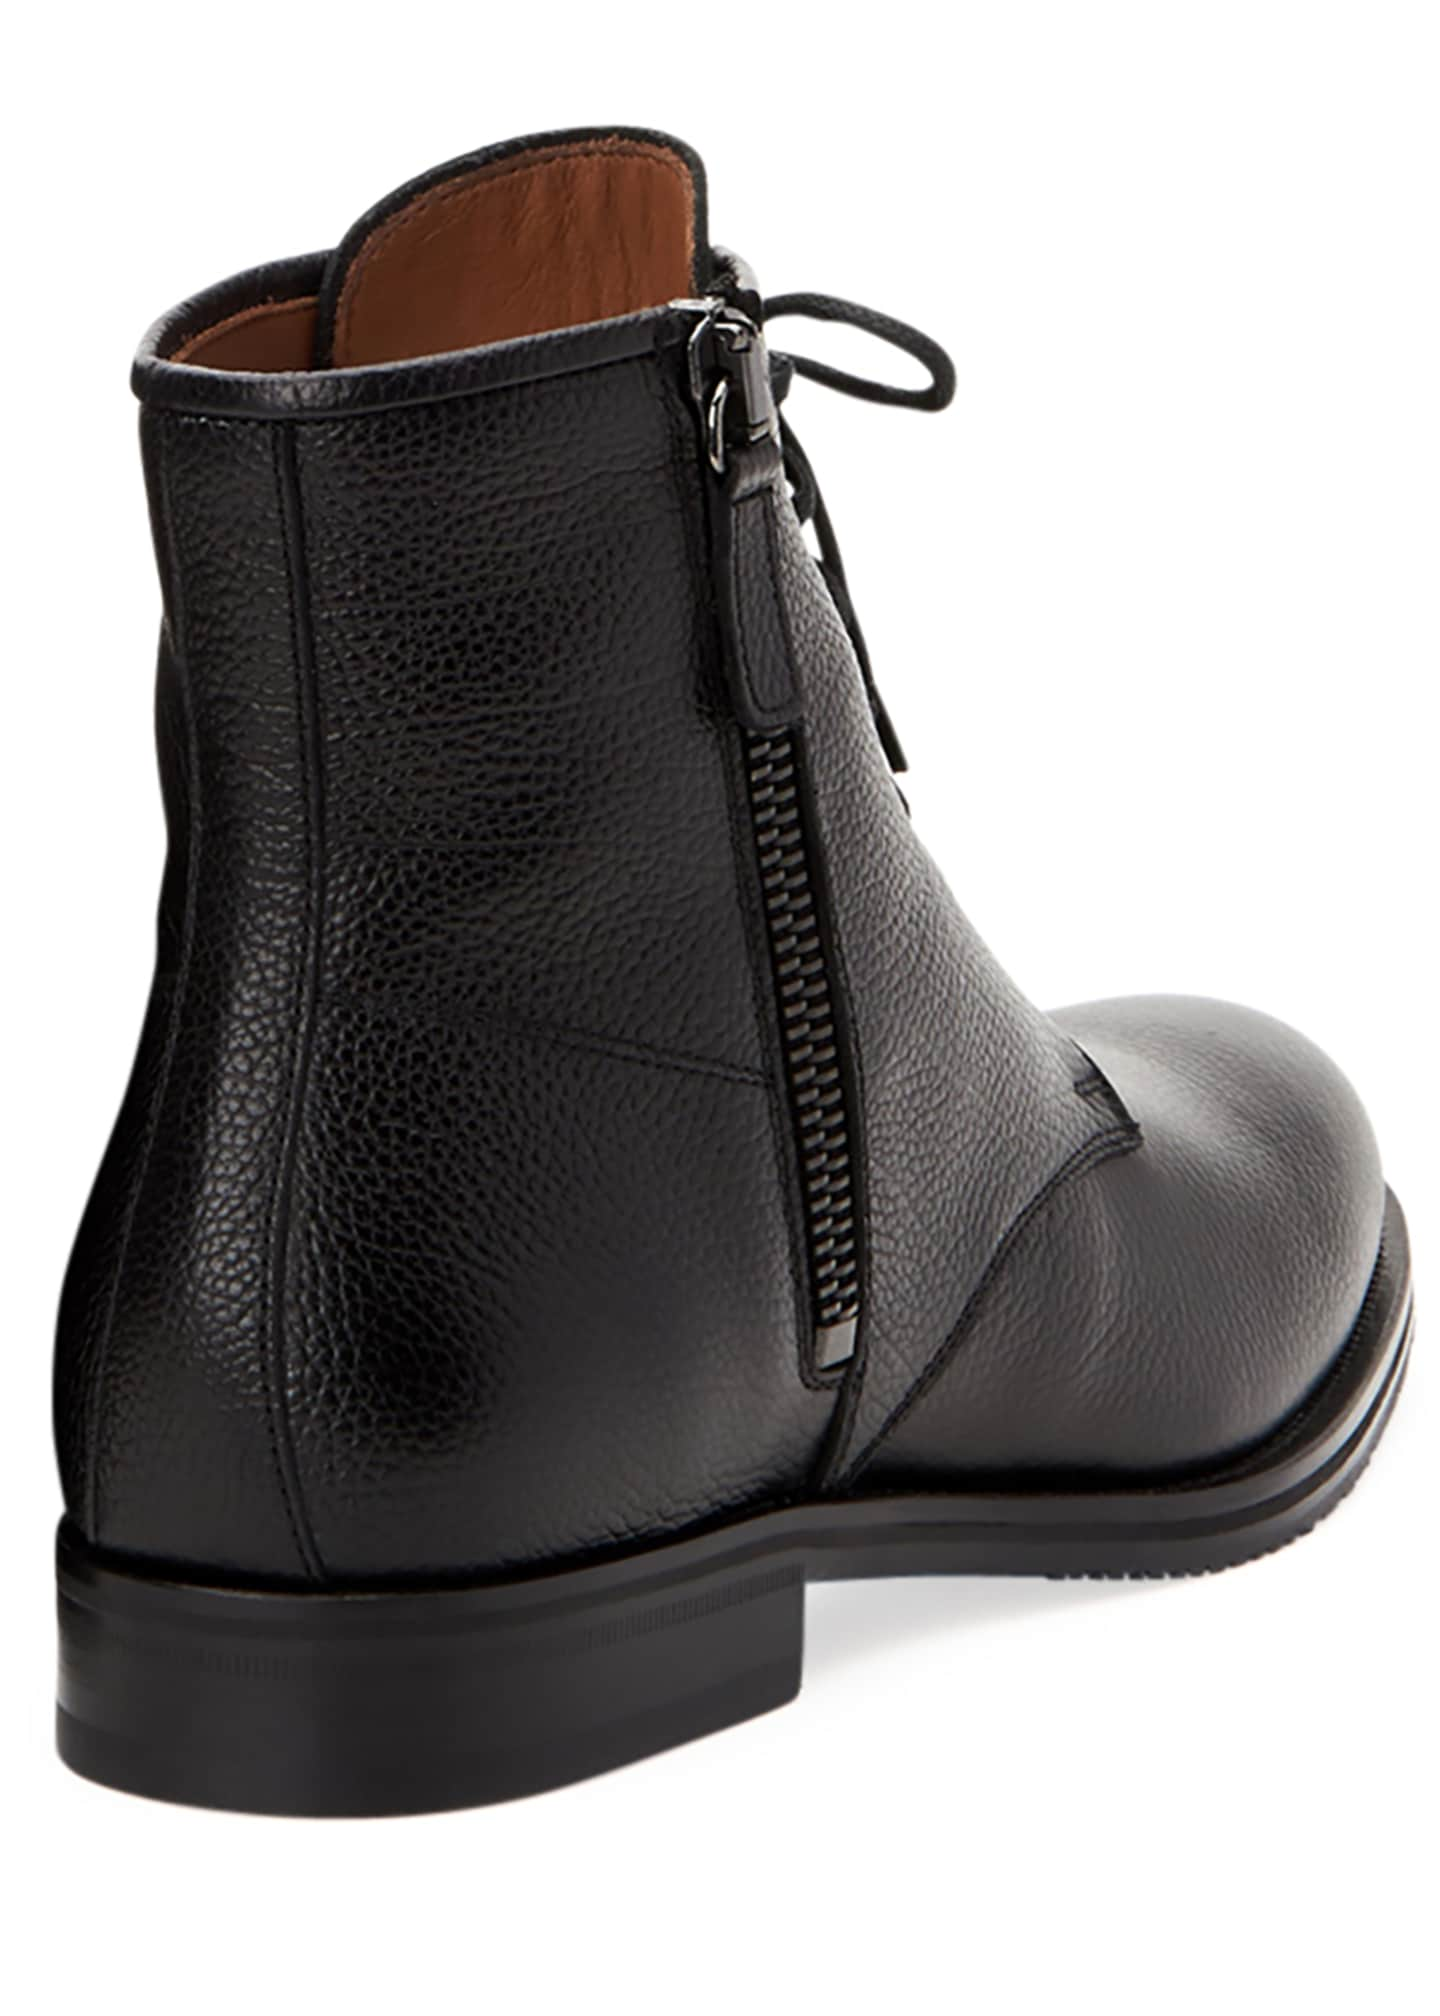 Image 4 of 4: Men's Vladimir Leather Boots